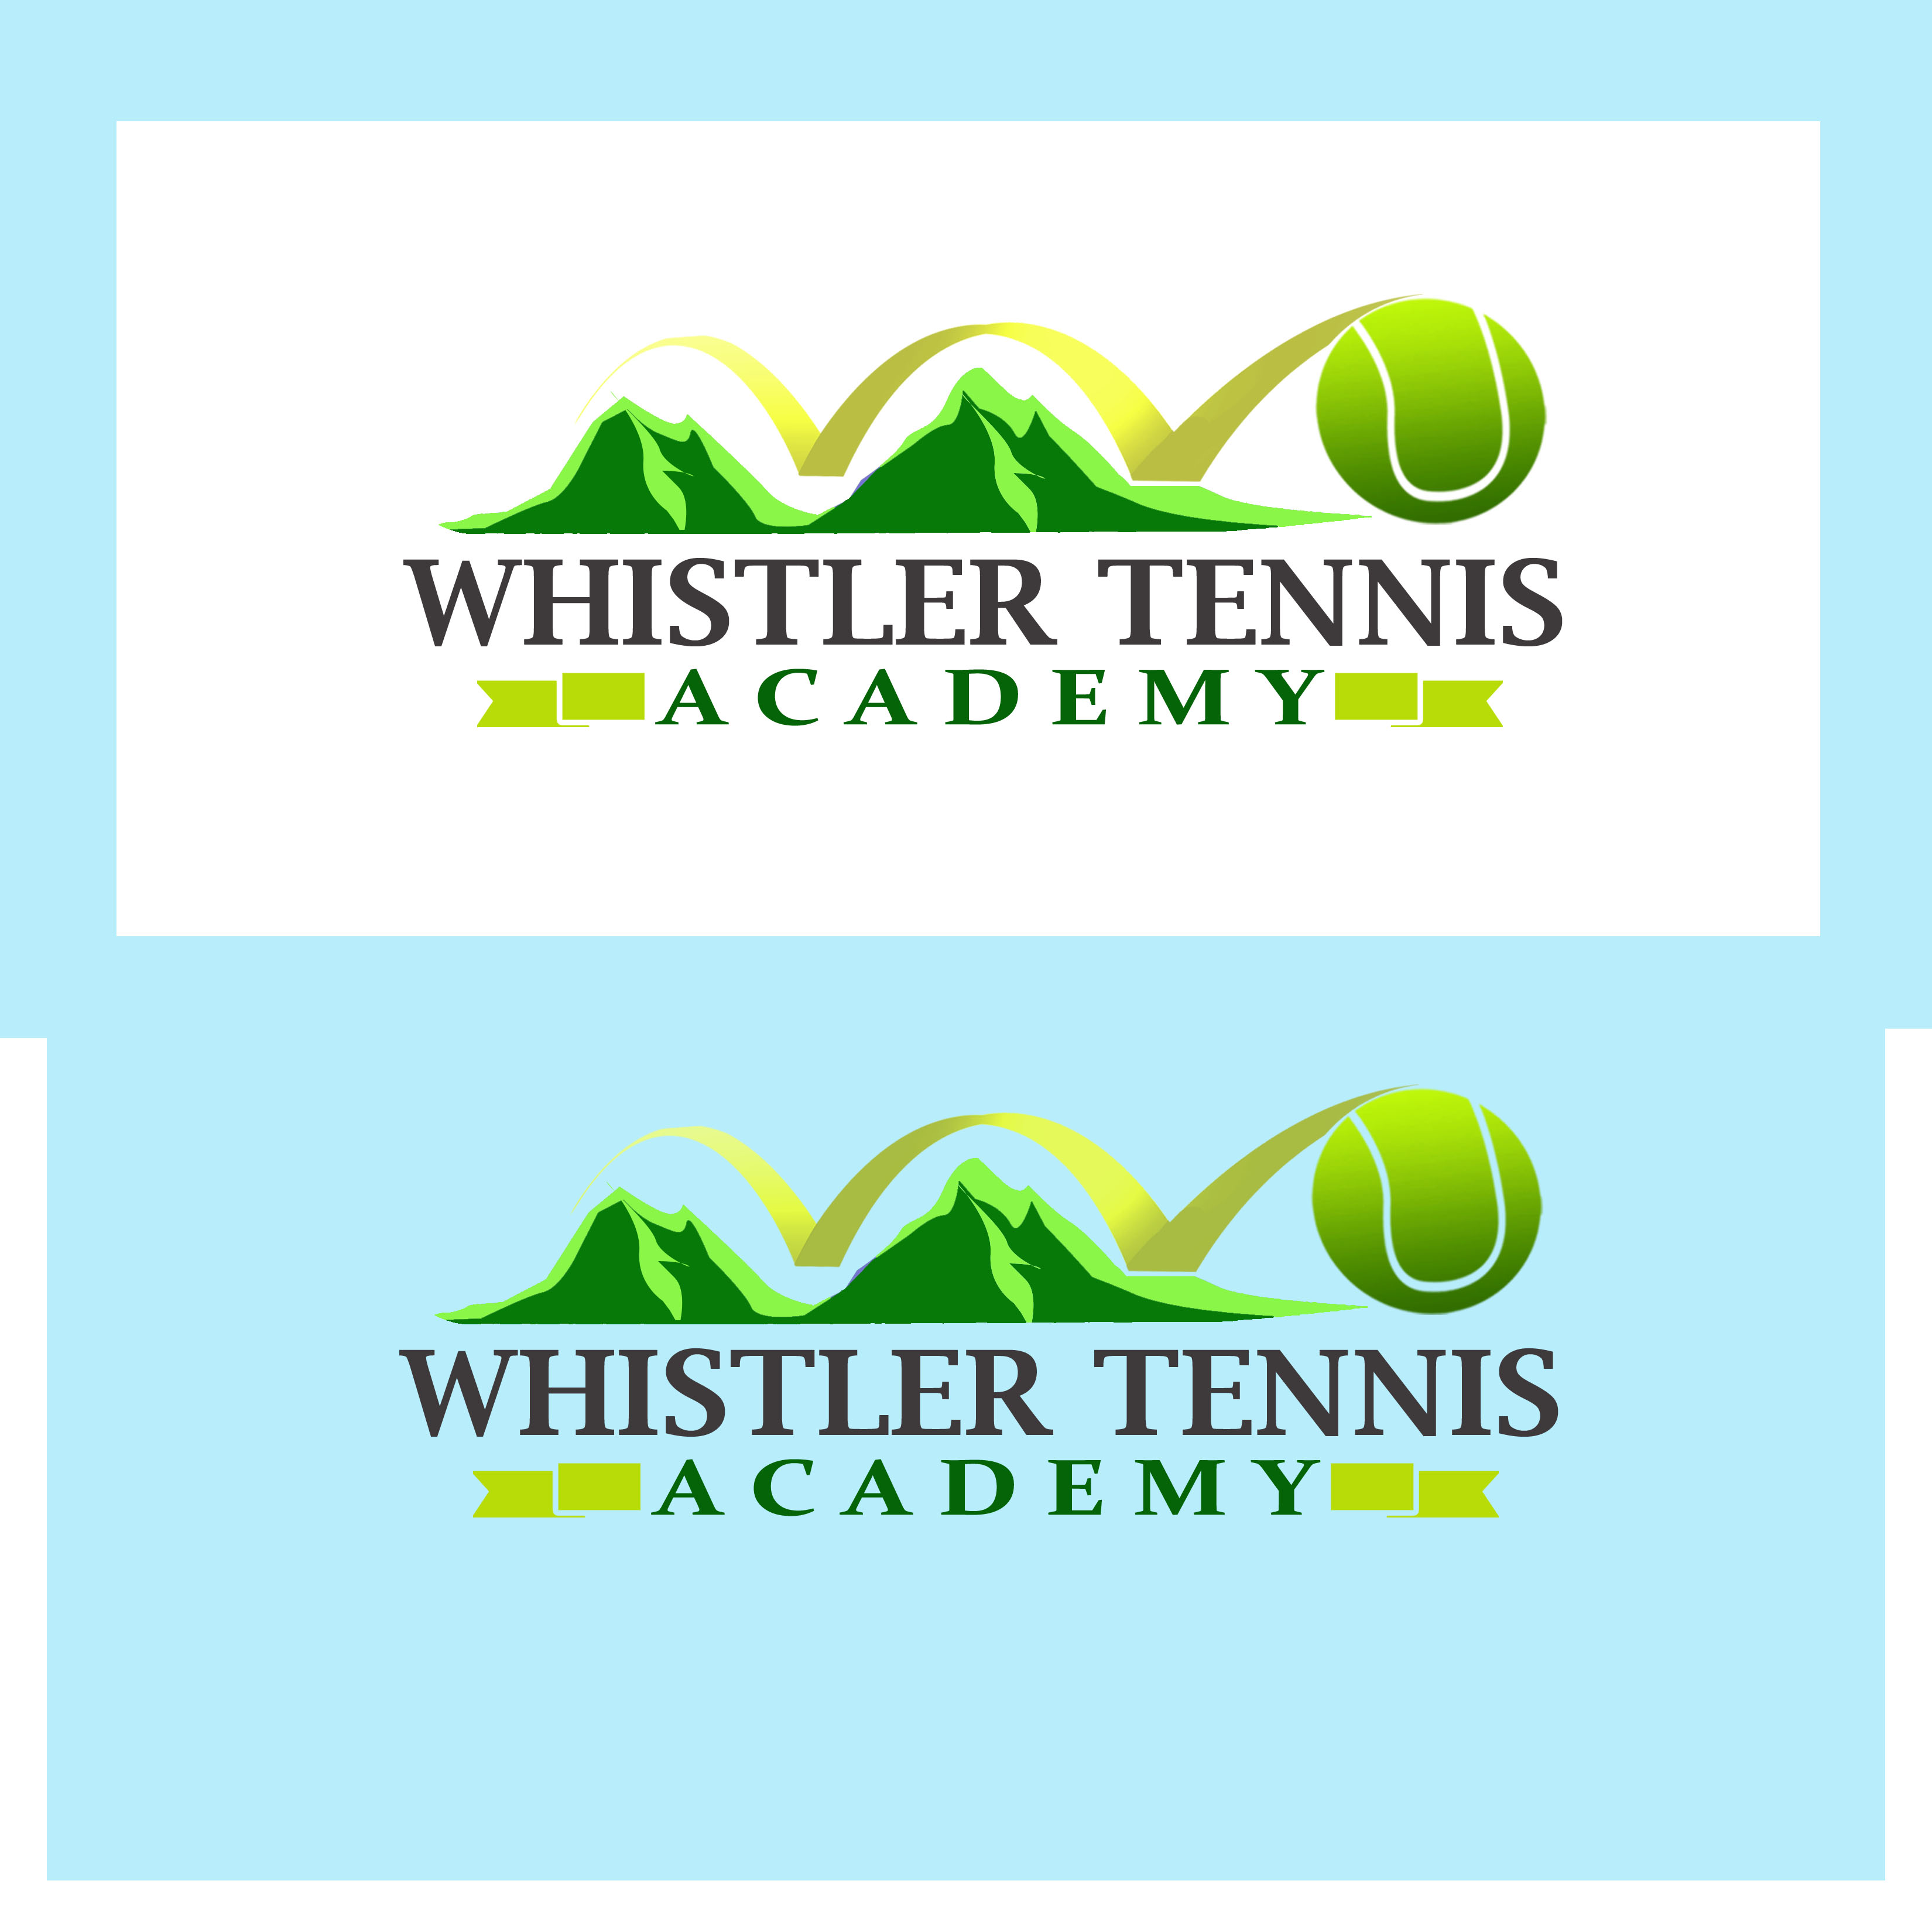 Logo Design by Allan Esclamado - Entry No. 183 in the Logo Design Contest Imaginative Logo Design for Whistler Tennis Academy.